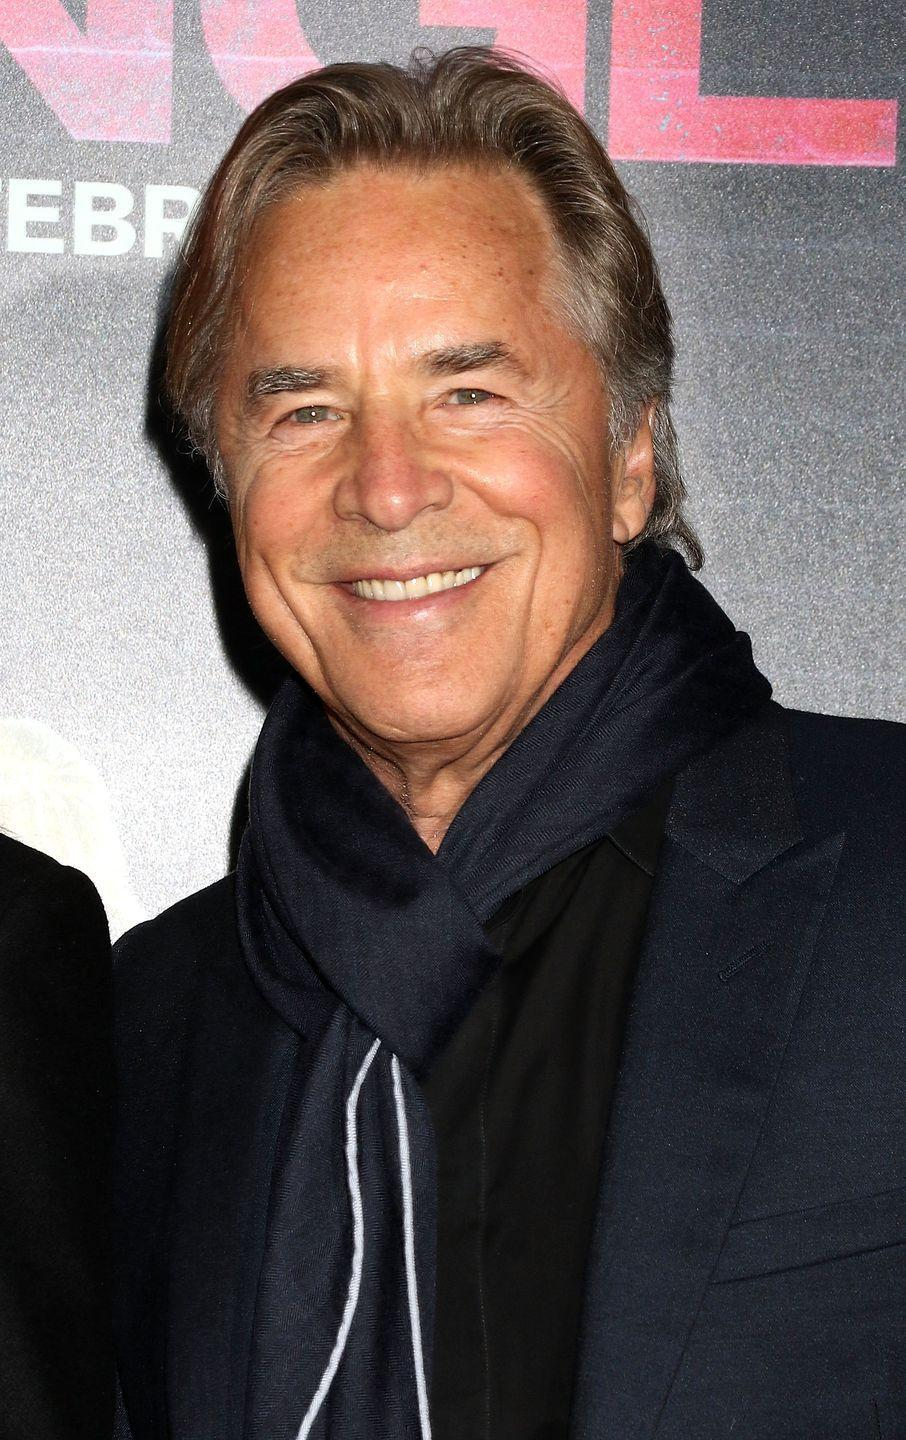 <p>During the '90s, Don again fought crime as the lead in <em>Nash Bridges</em> from 1996 until 2001. While he's traded in his pastel blazers for chic scarves, we still think he's a silver fox.</p>